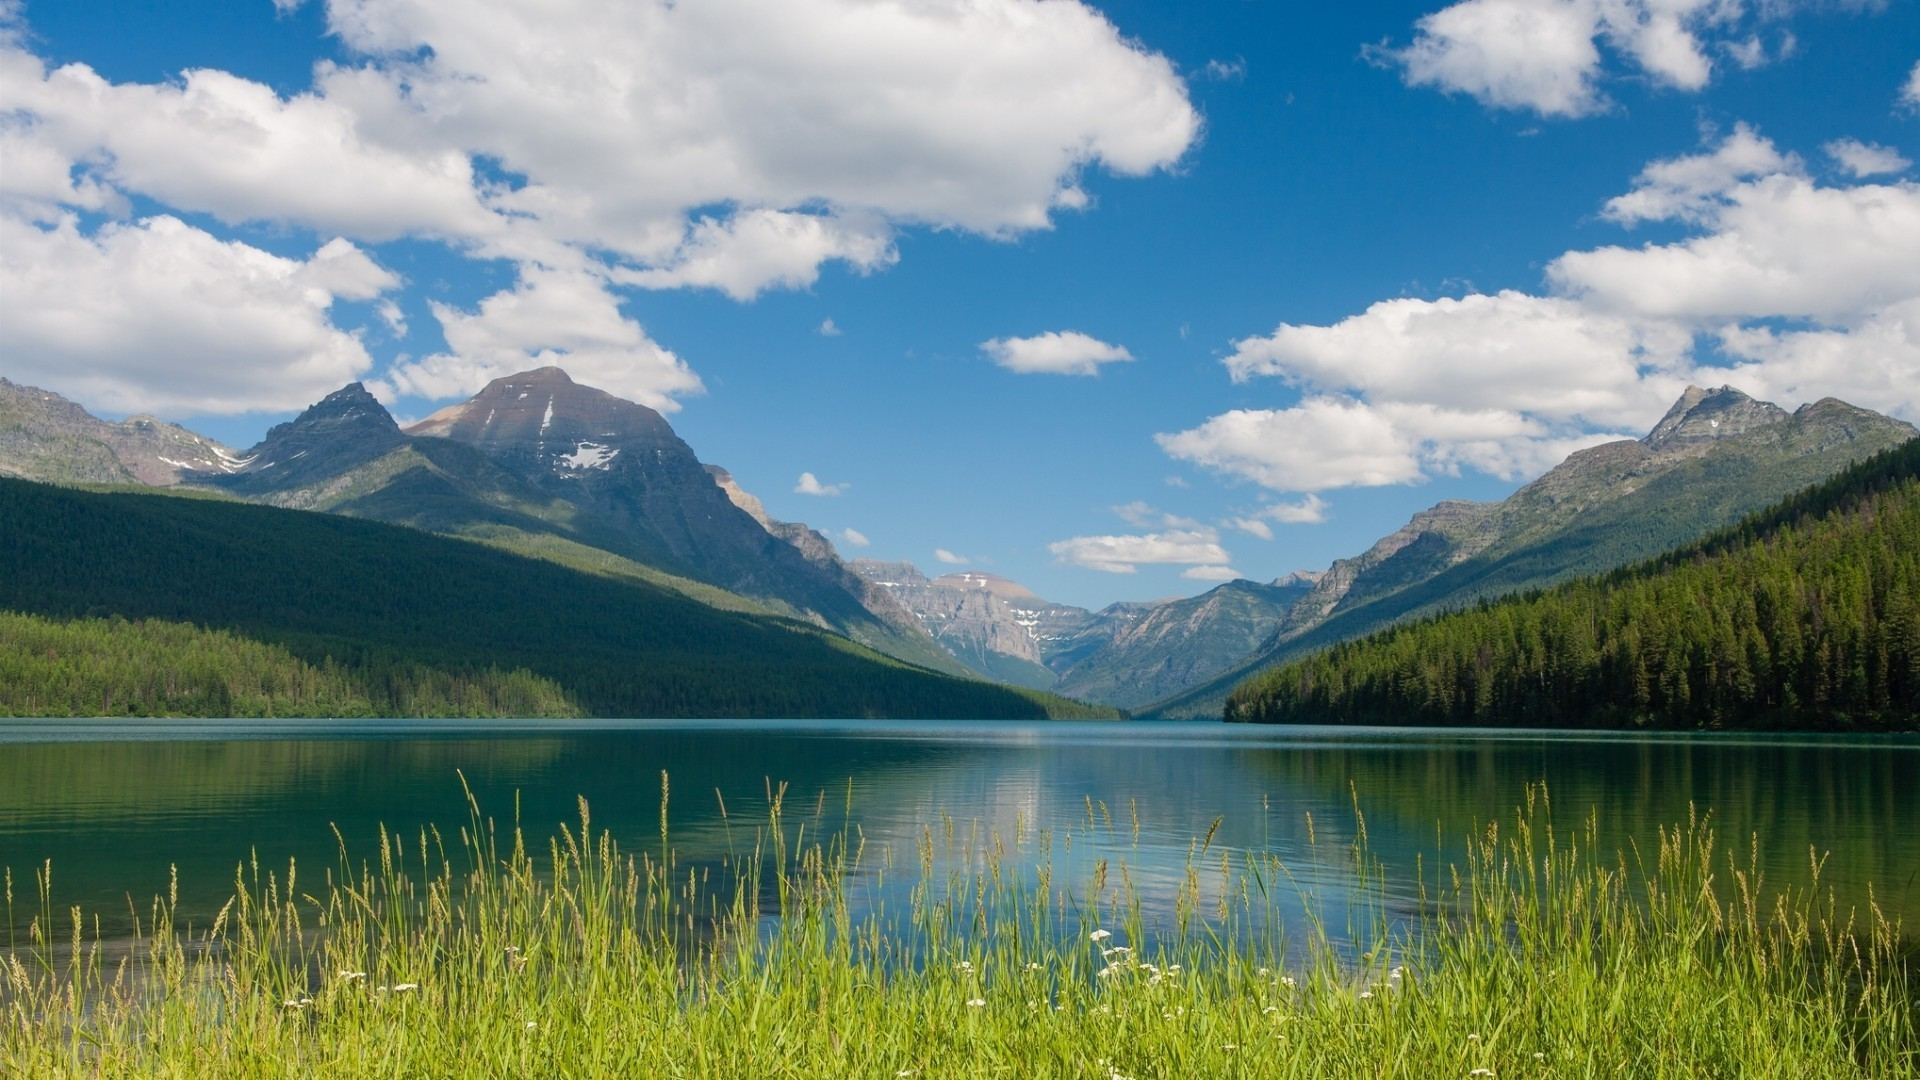 Mountains, sky, lake, forest, grass